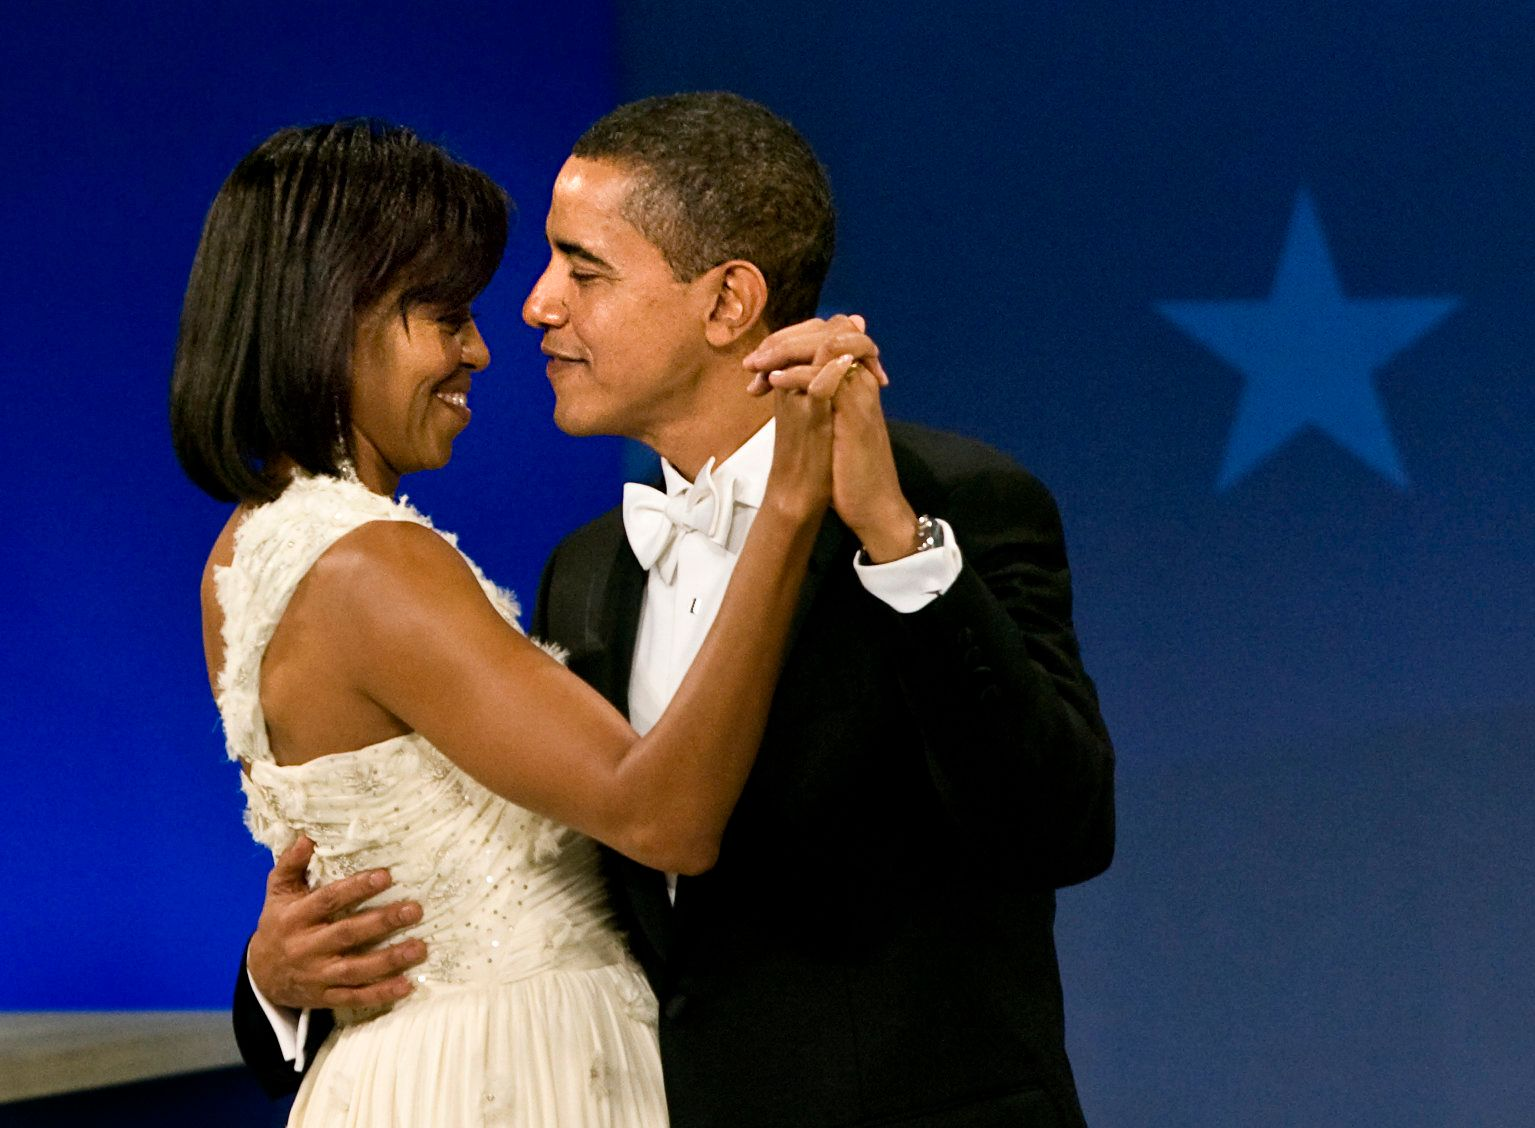 Barack Obama Wore The Same Tuxedo For His Entire Presidency, And Nobody